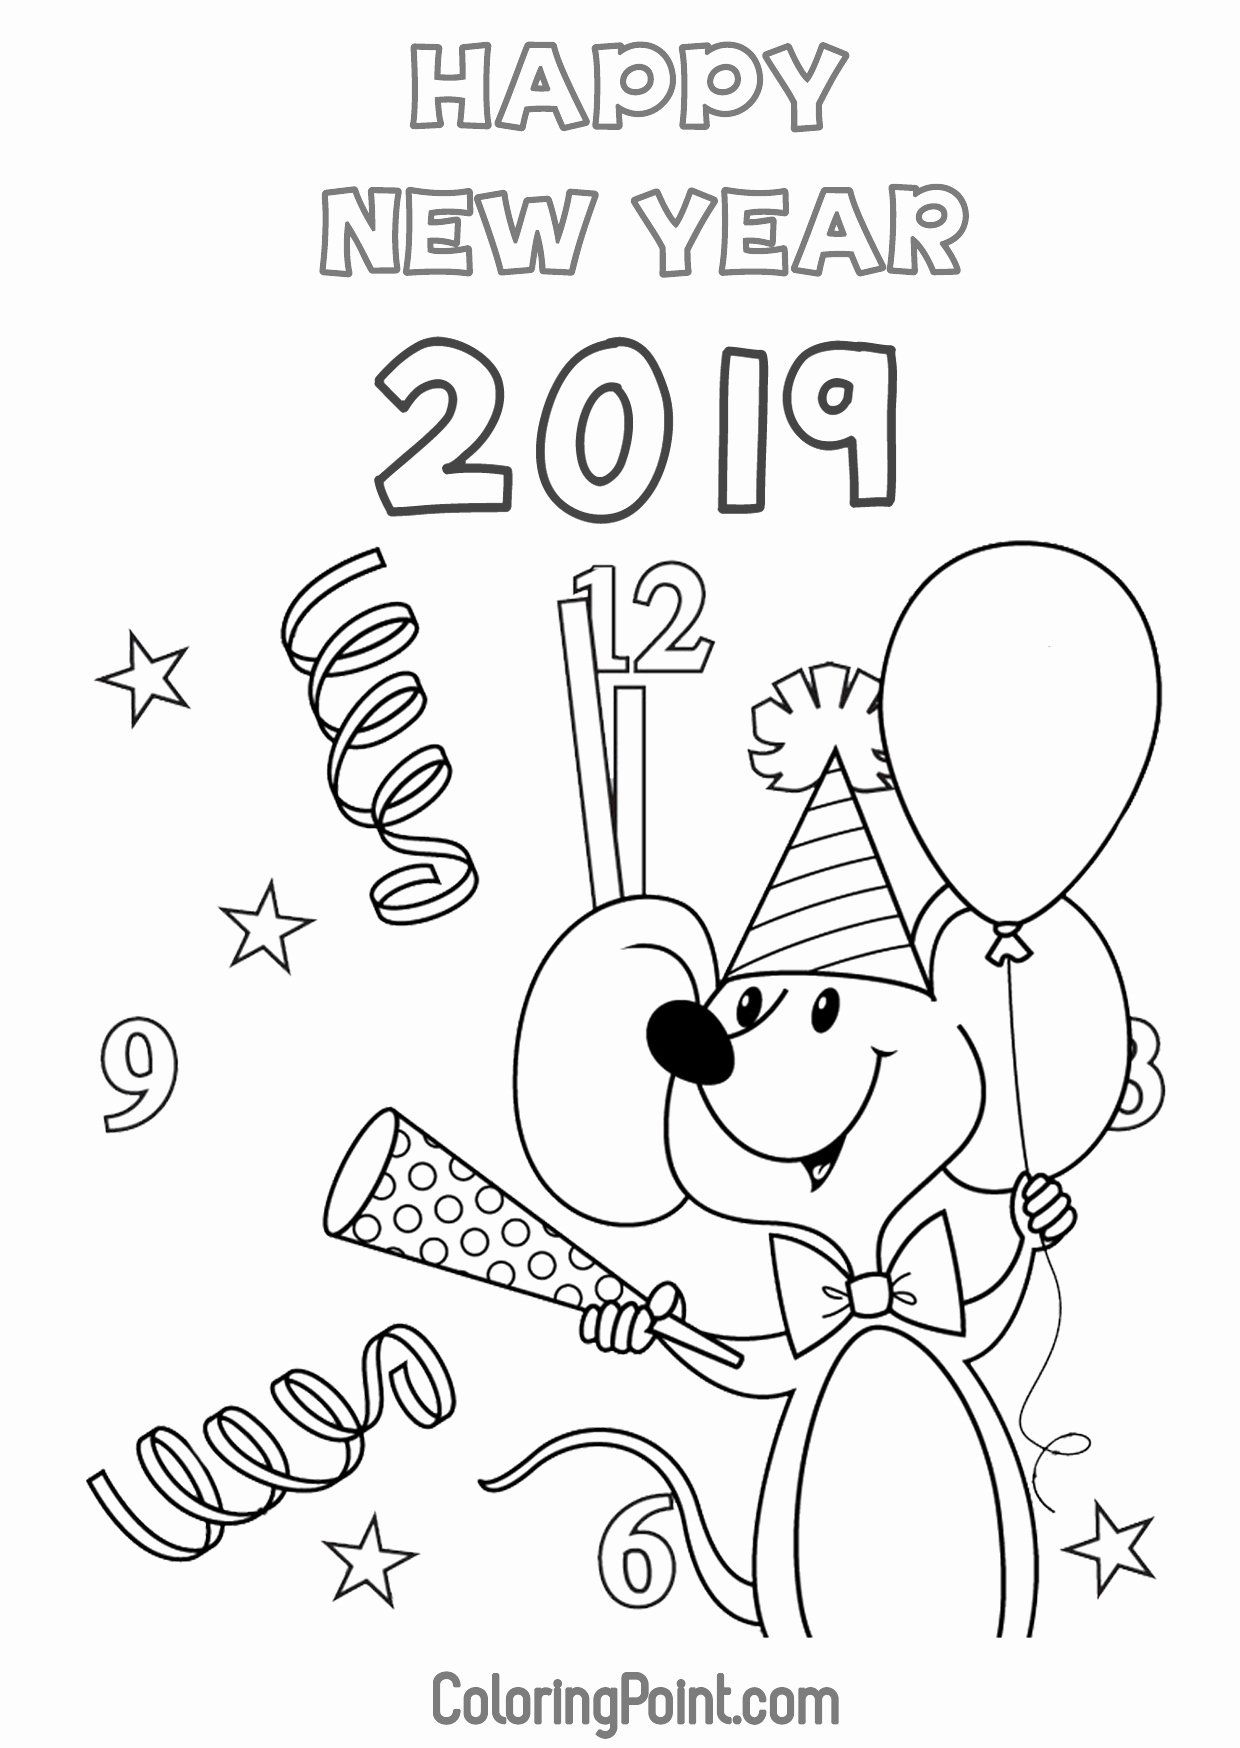 Hispanic Heritage Coloring Pages Luxury Coloring Pages